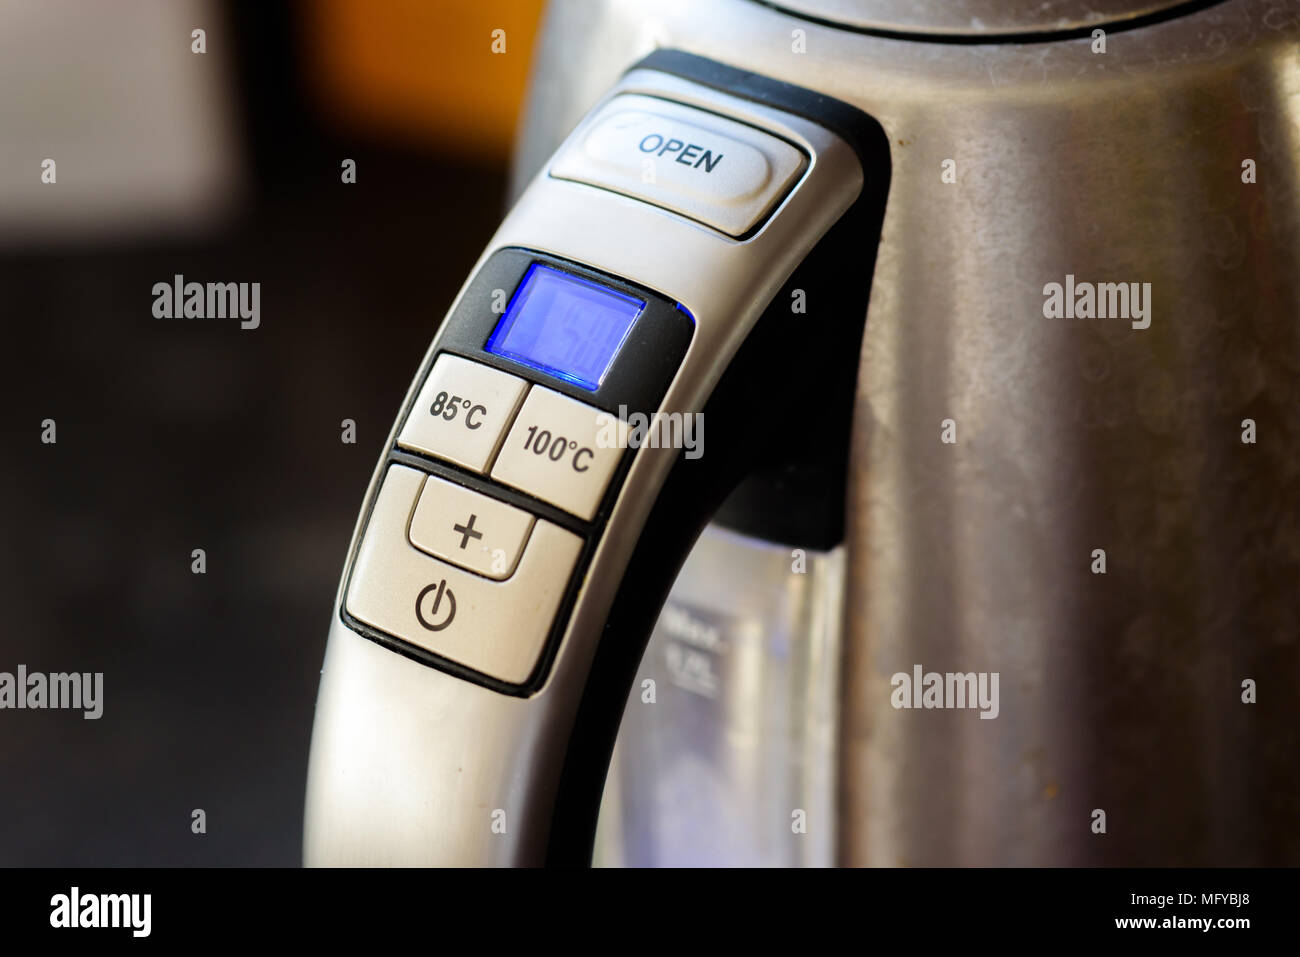 Kettle controls - Stock Image